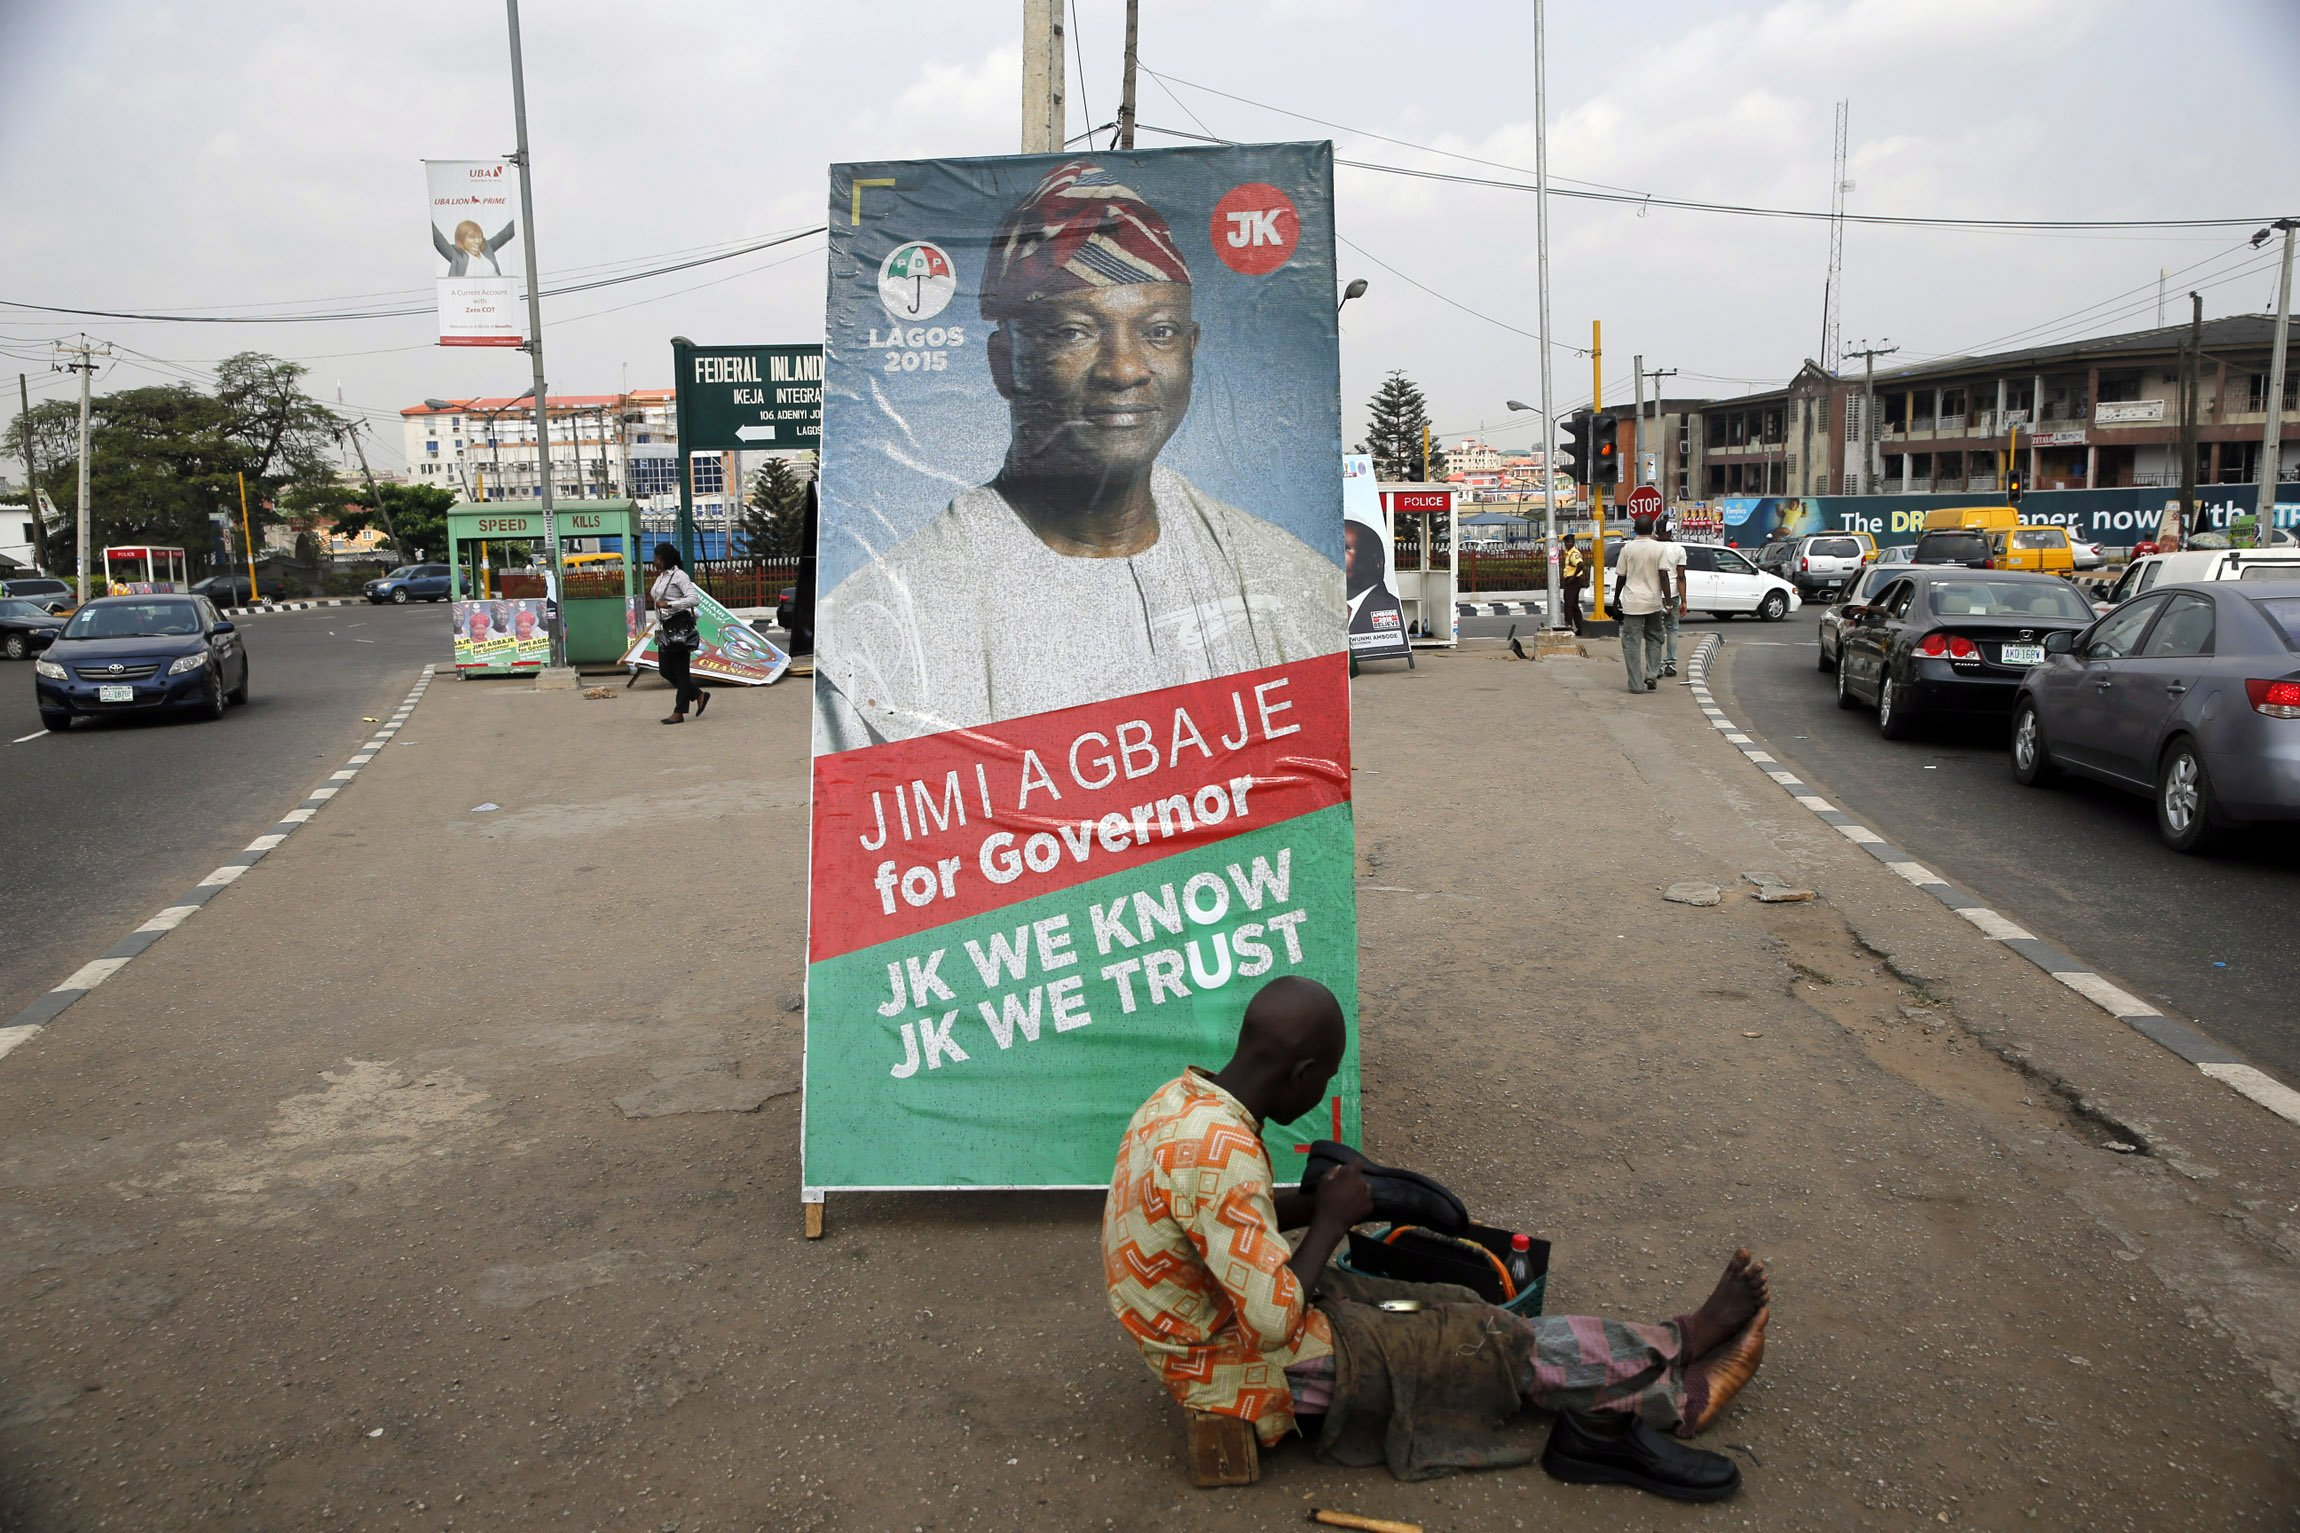 A shoe-mender works near a poster campaigning for frontline contender and Lagos governorship candidate for the People's Democratic Party (PDP) Jimi Agbaje, along a road in the Ikeja district in Lagos, Nigeria on Feb. 3, 2015.